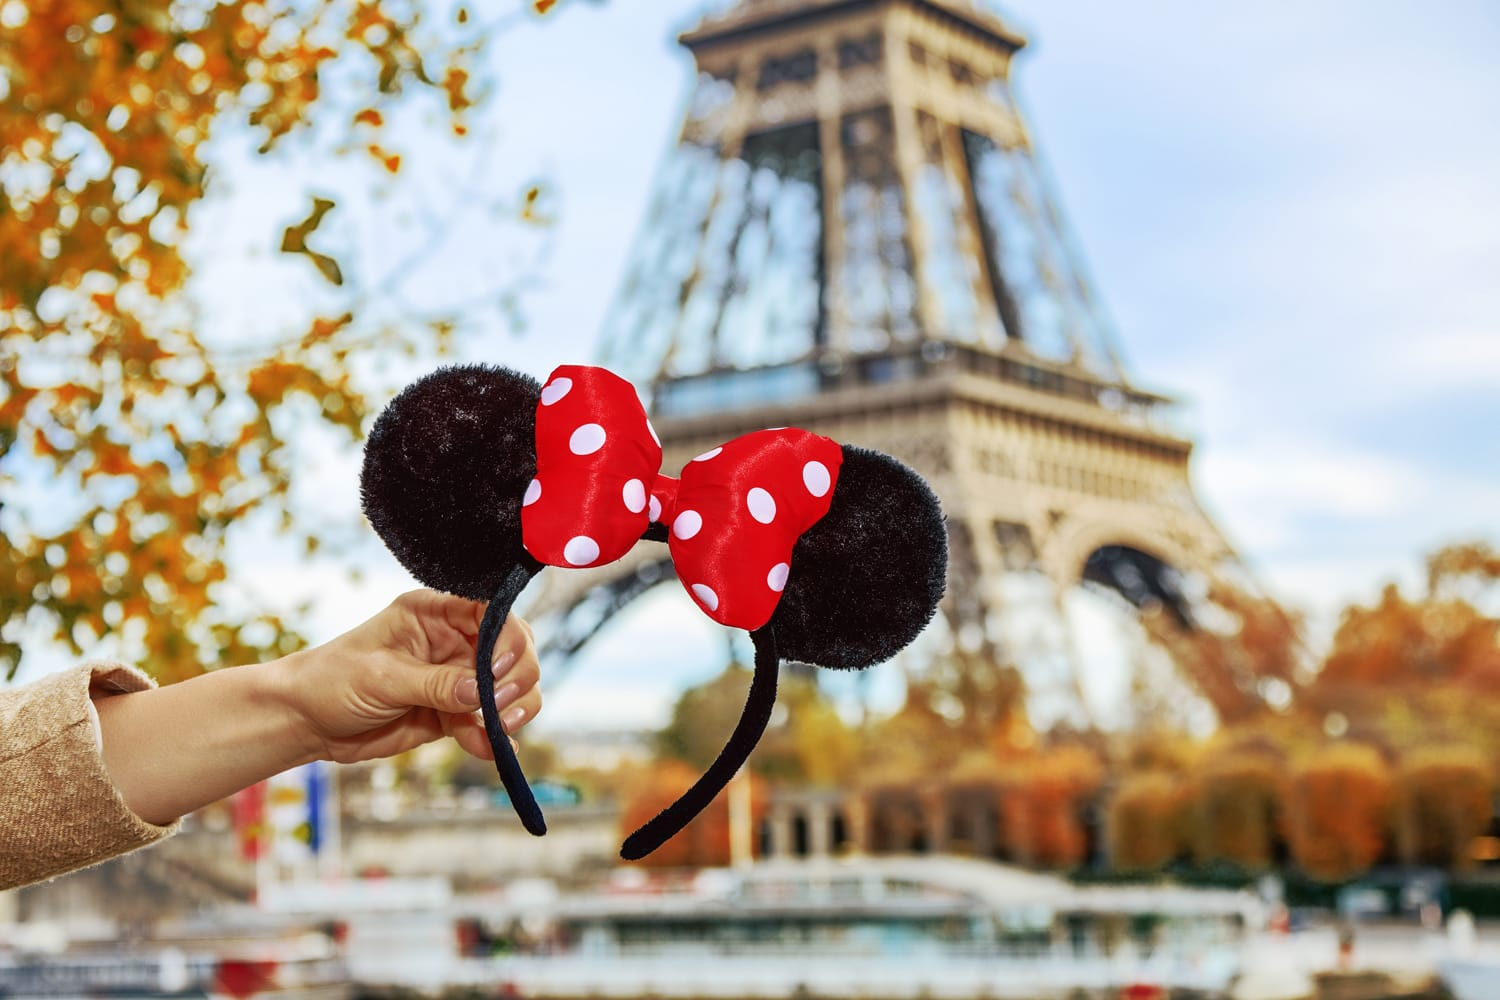 Closeup on Minnie Mouse Ears in female hand on embankment near Eiffel tower in Paris, France